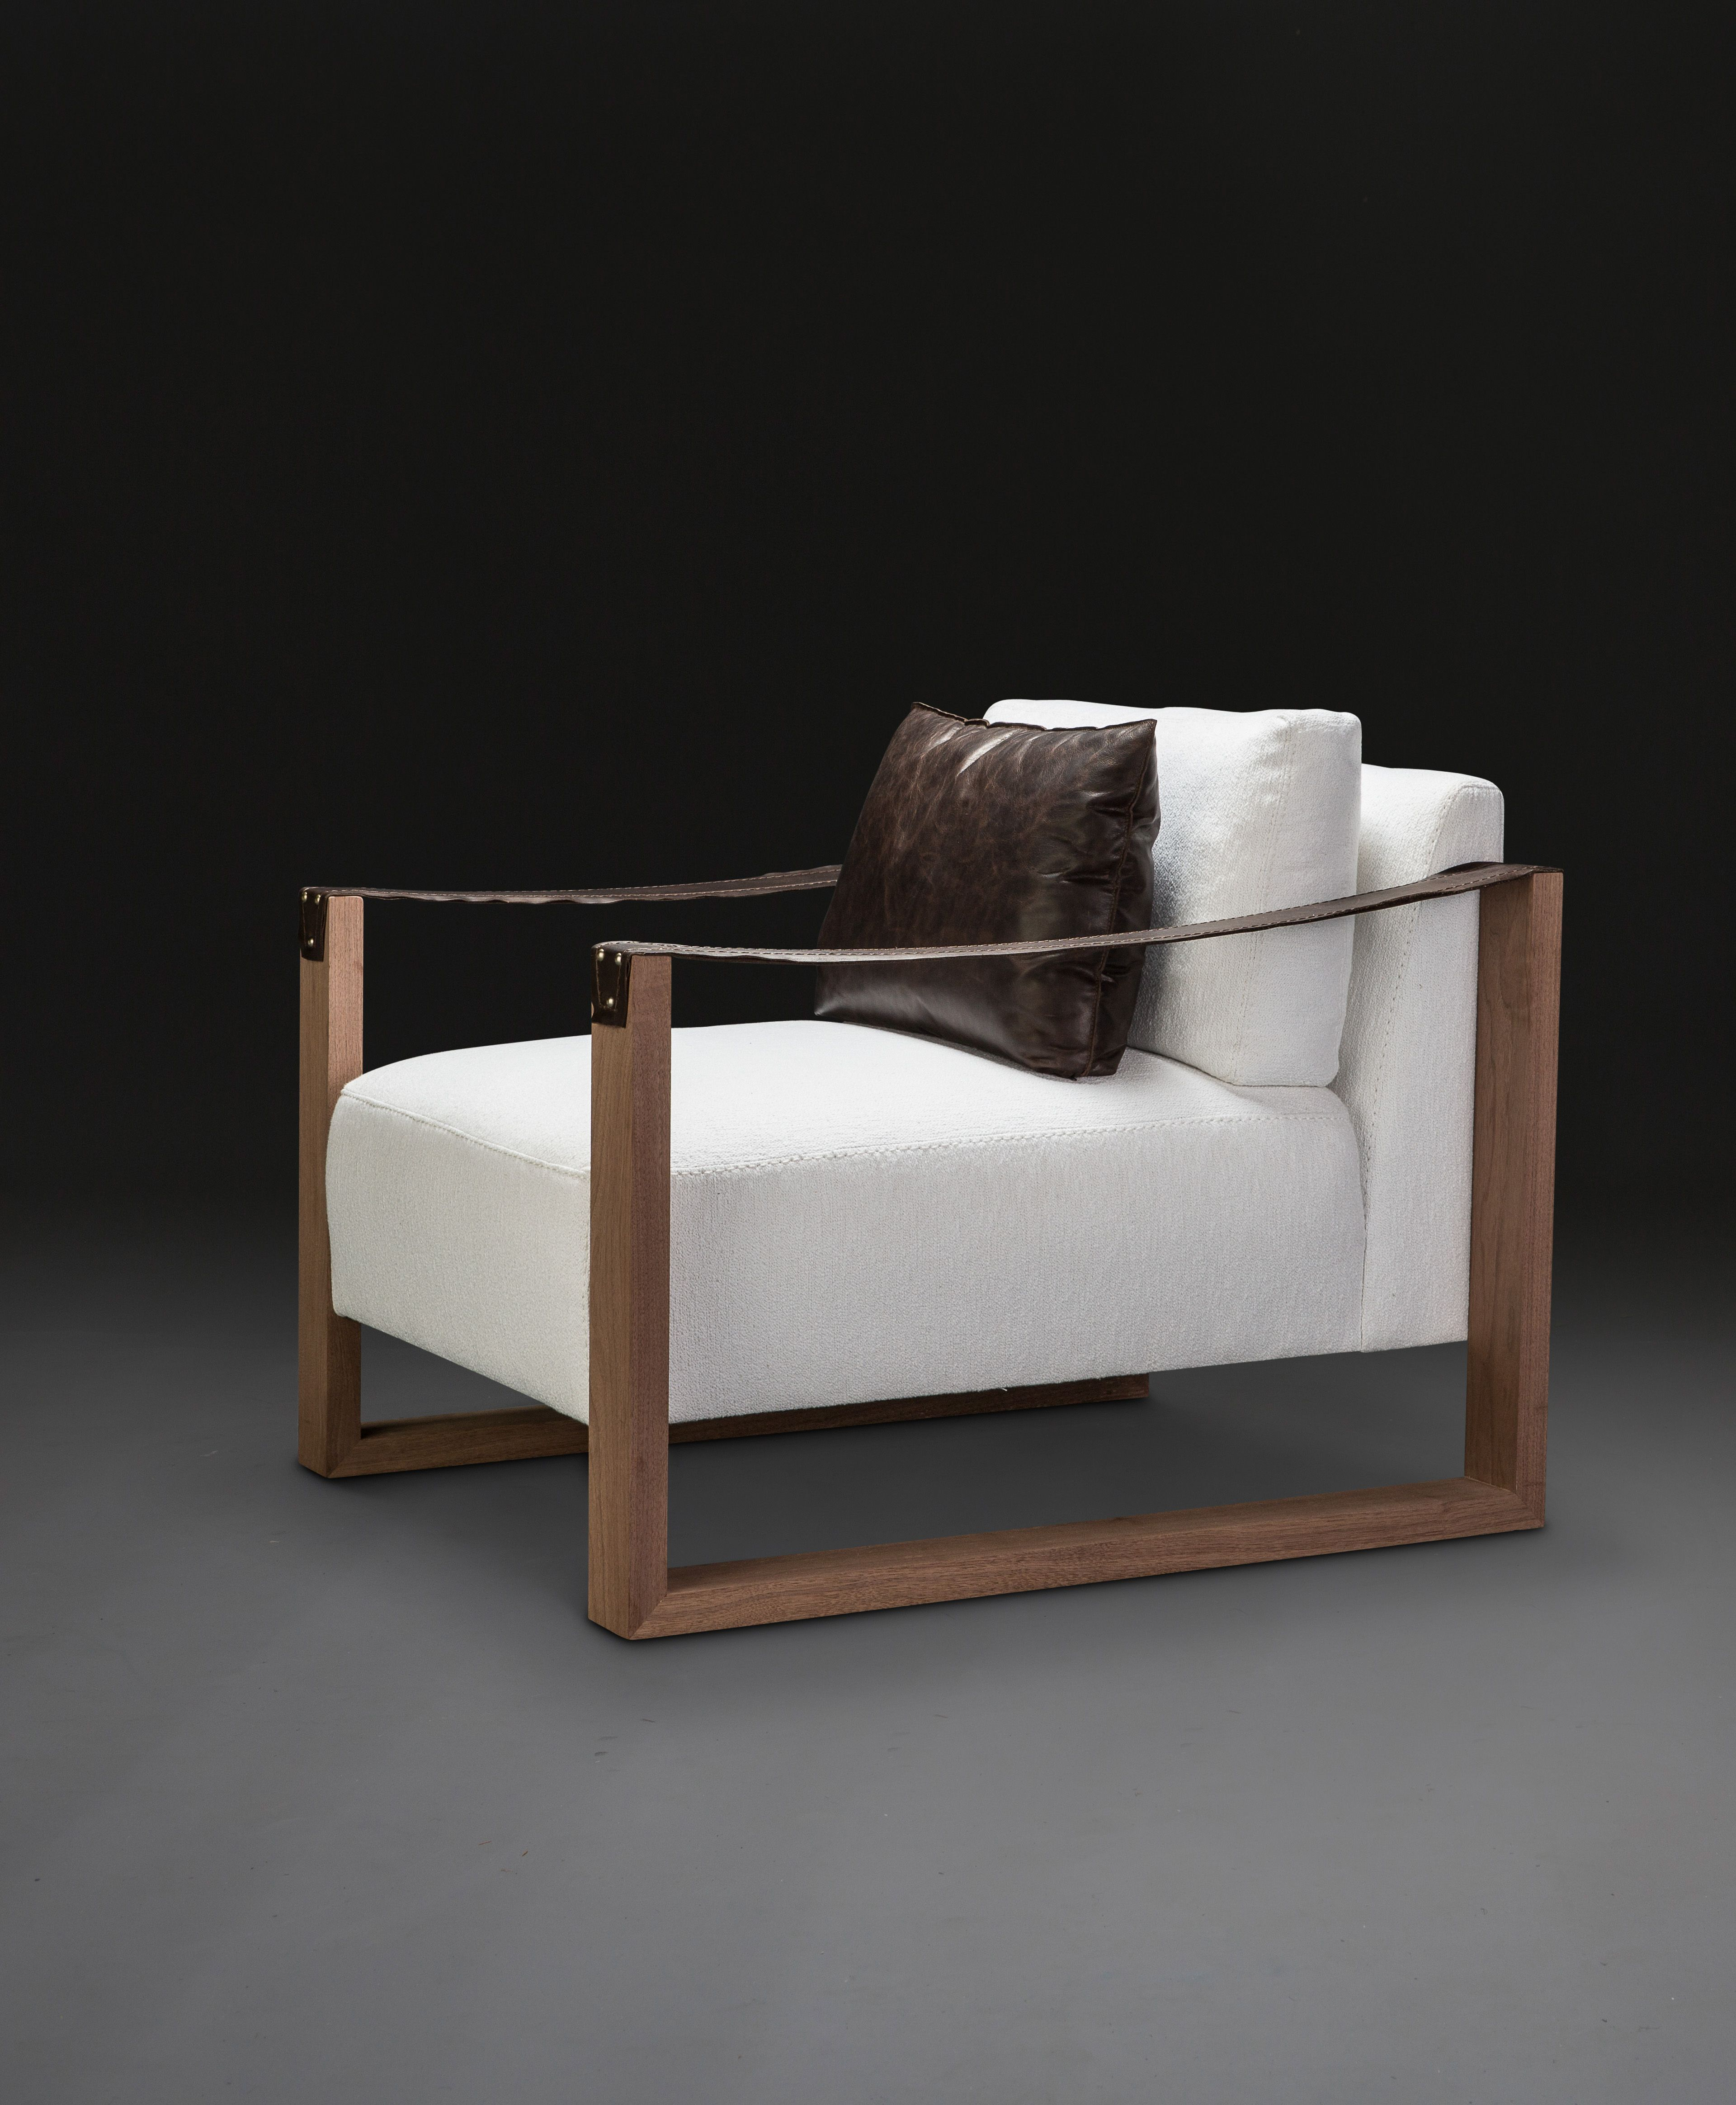 Where To Buy Fur Rug In Lagos: Benedict Club Chair By Verellen